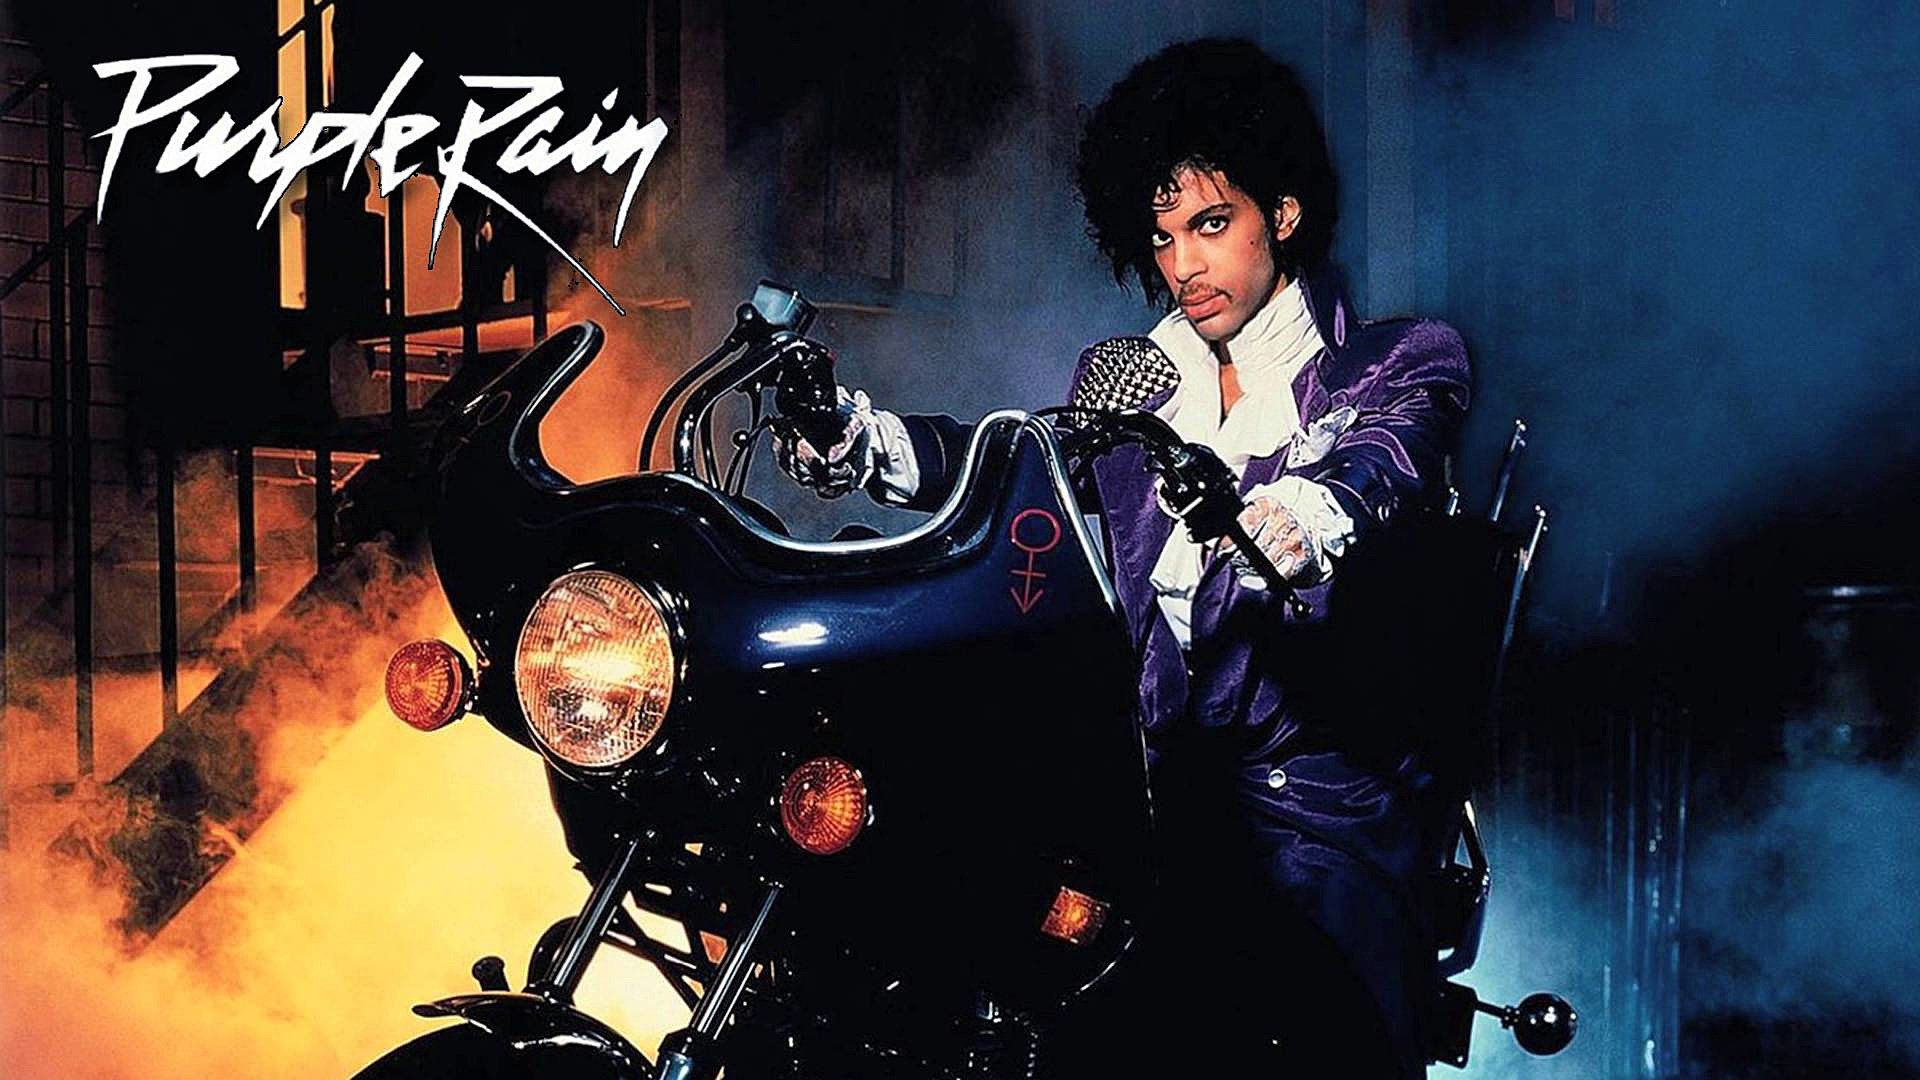 many Prince albums returning to Spotify & other streaming services